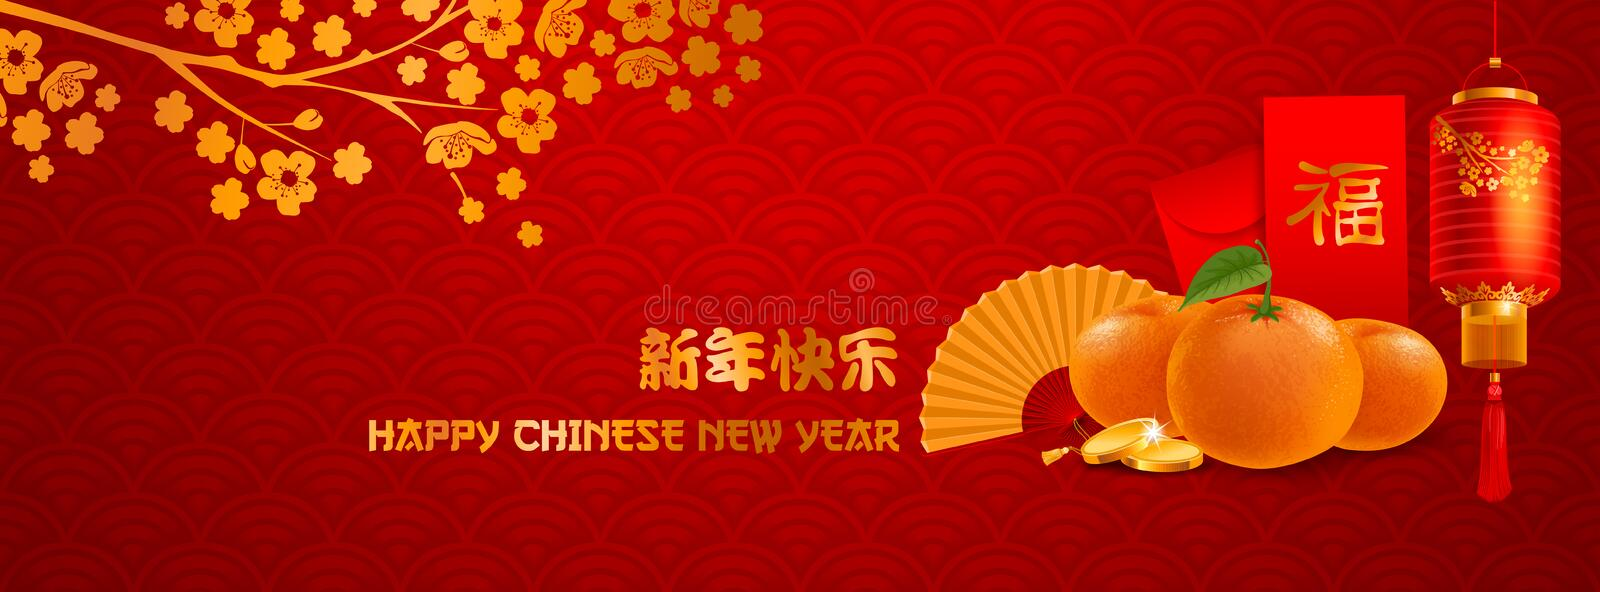 Chinese New Year Facebook Cover Stock Vector Illustration Of Profile Brand 83789202 Fireworks 2021 happy new year facebook cover photo. dreamstime com